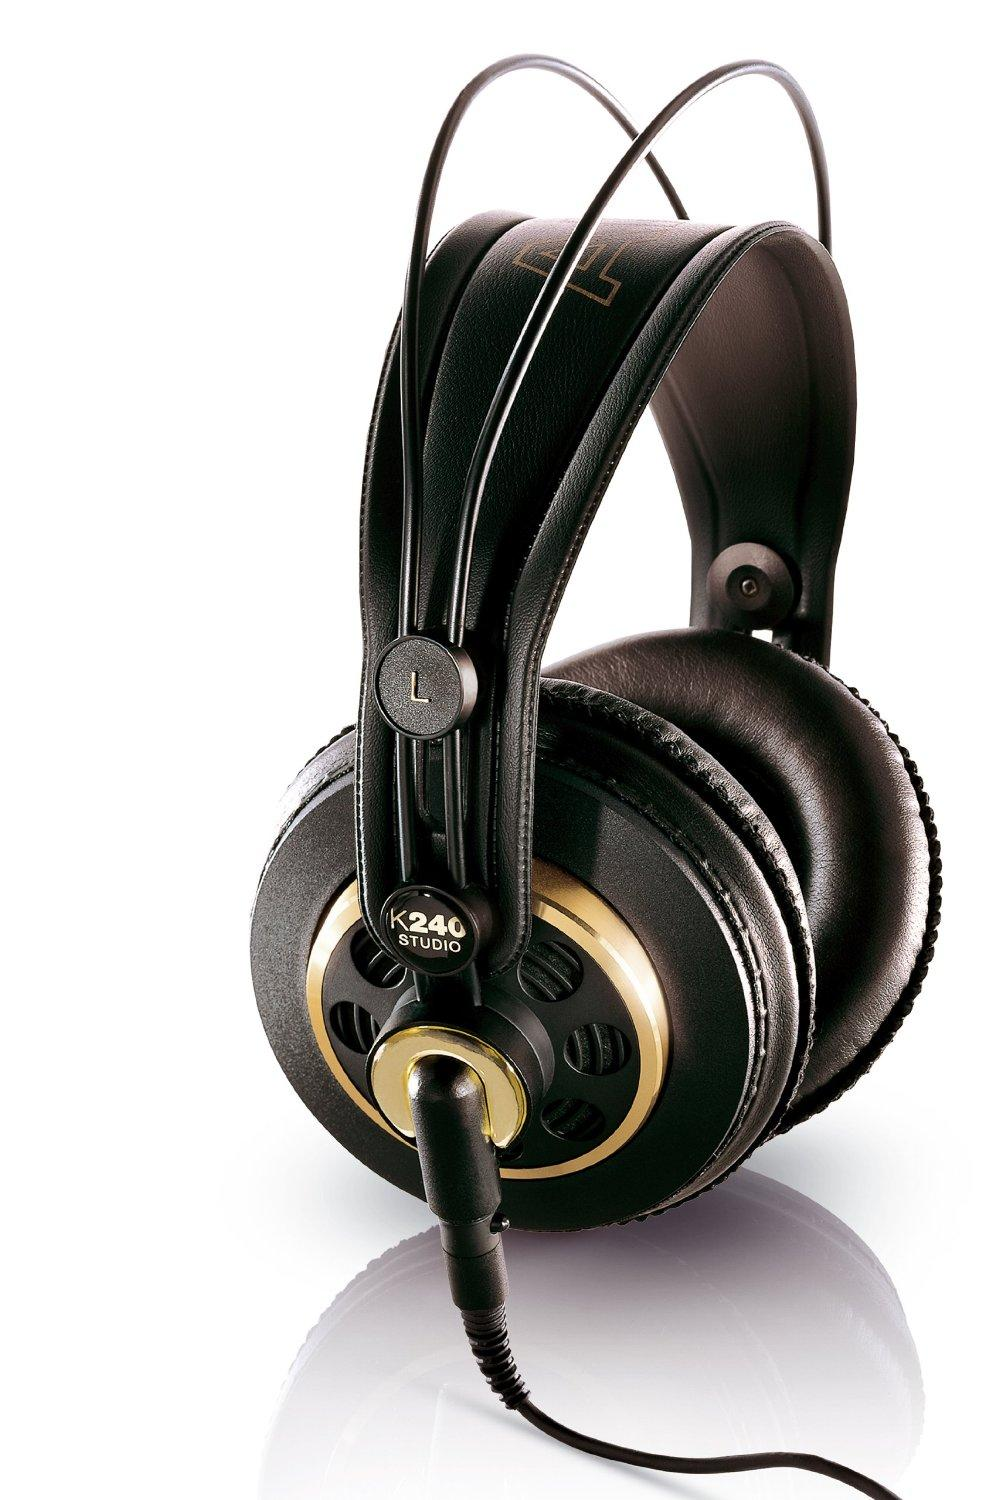 AKG K240s Semi-Open Studio Headphones